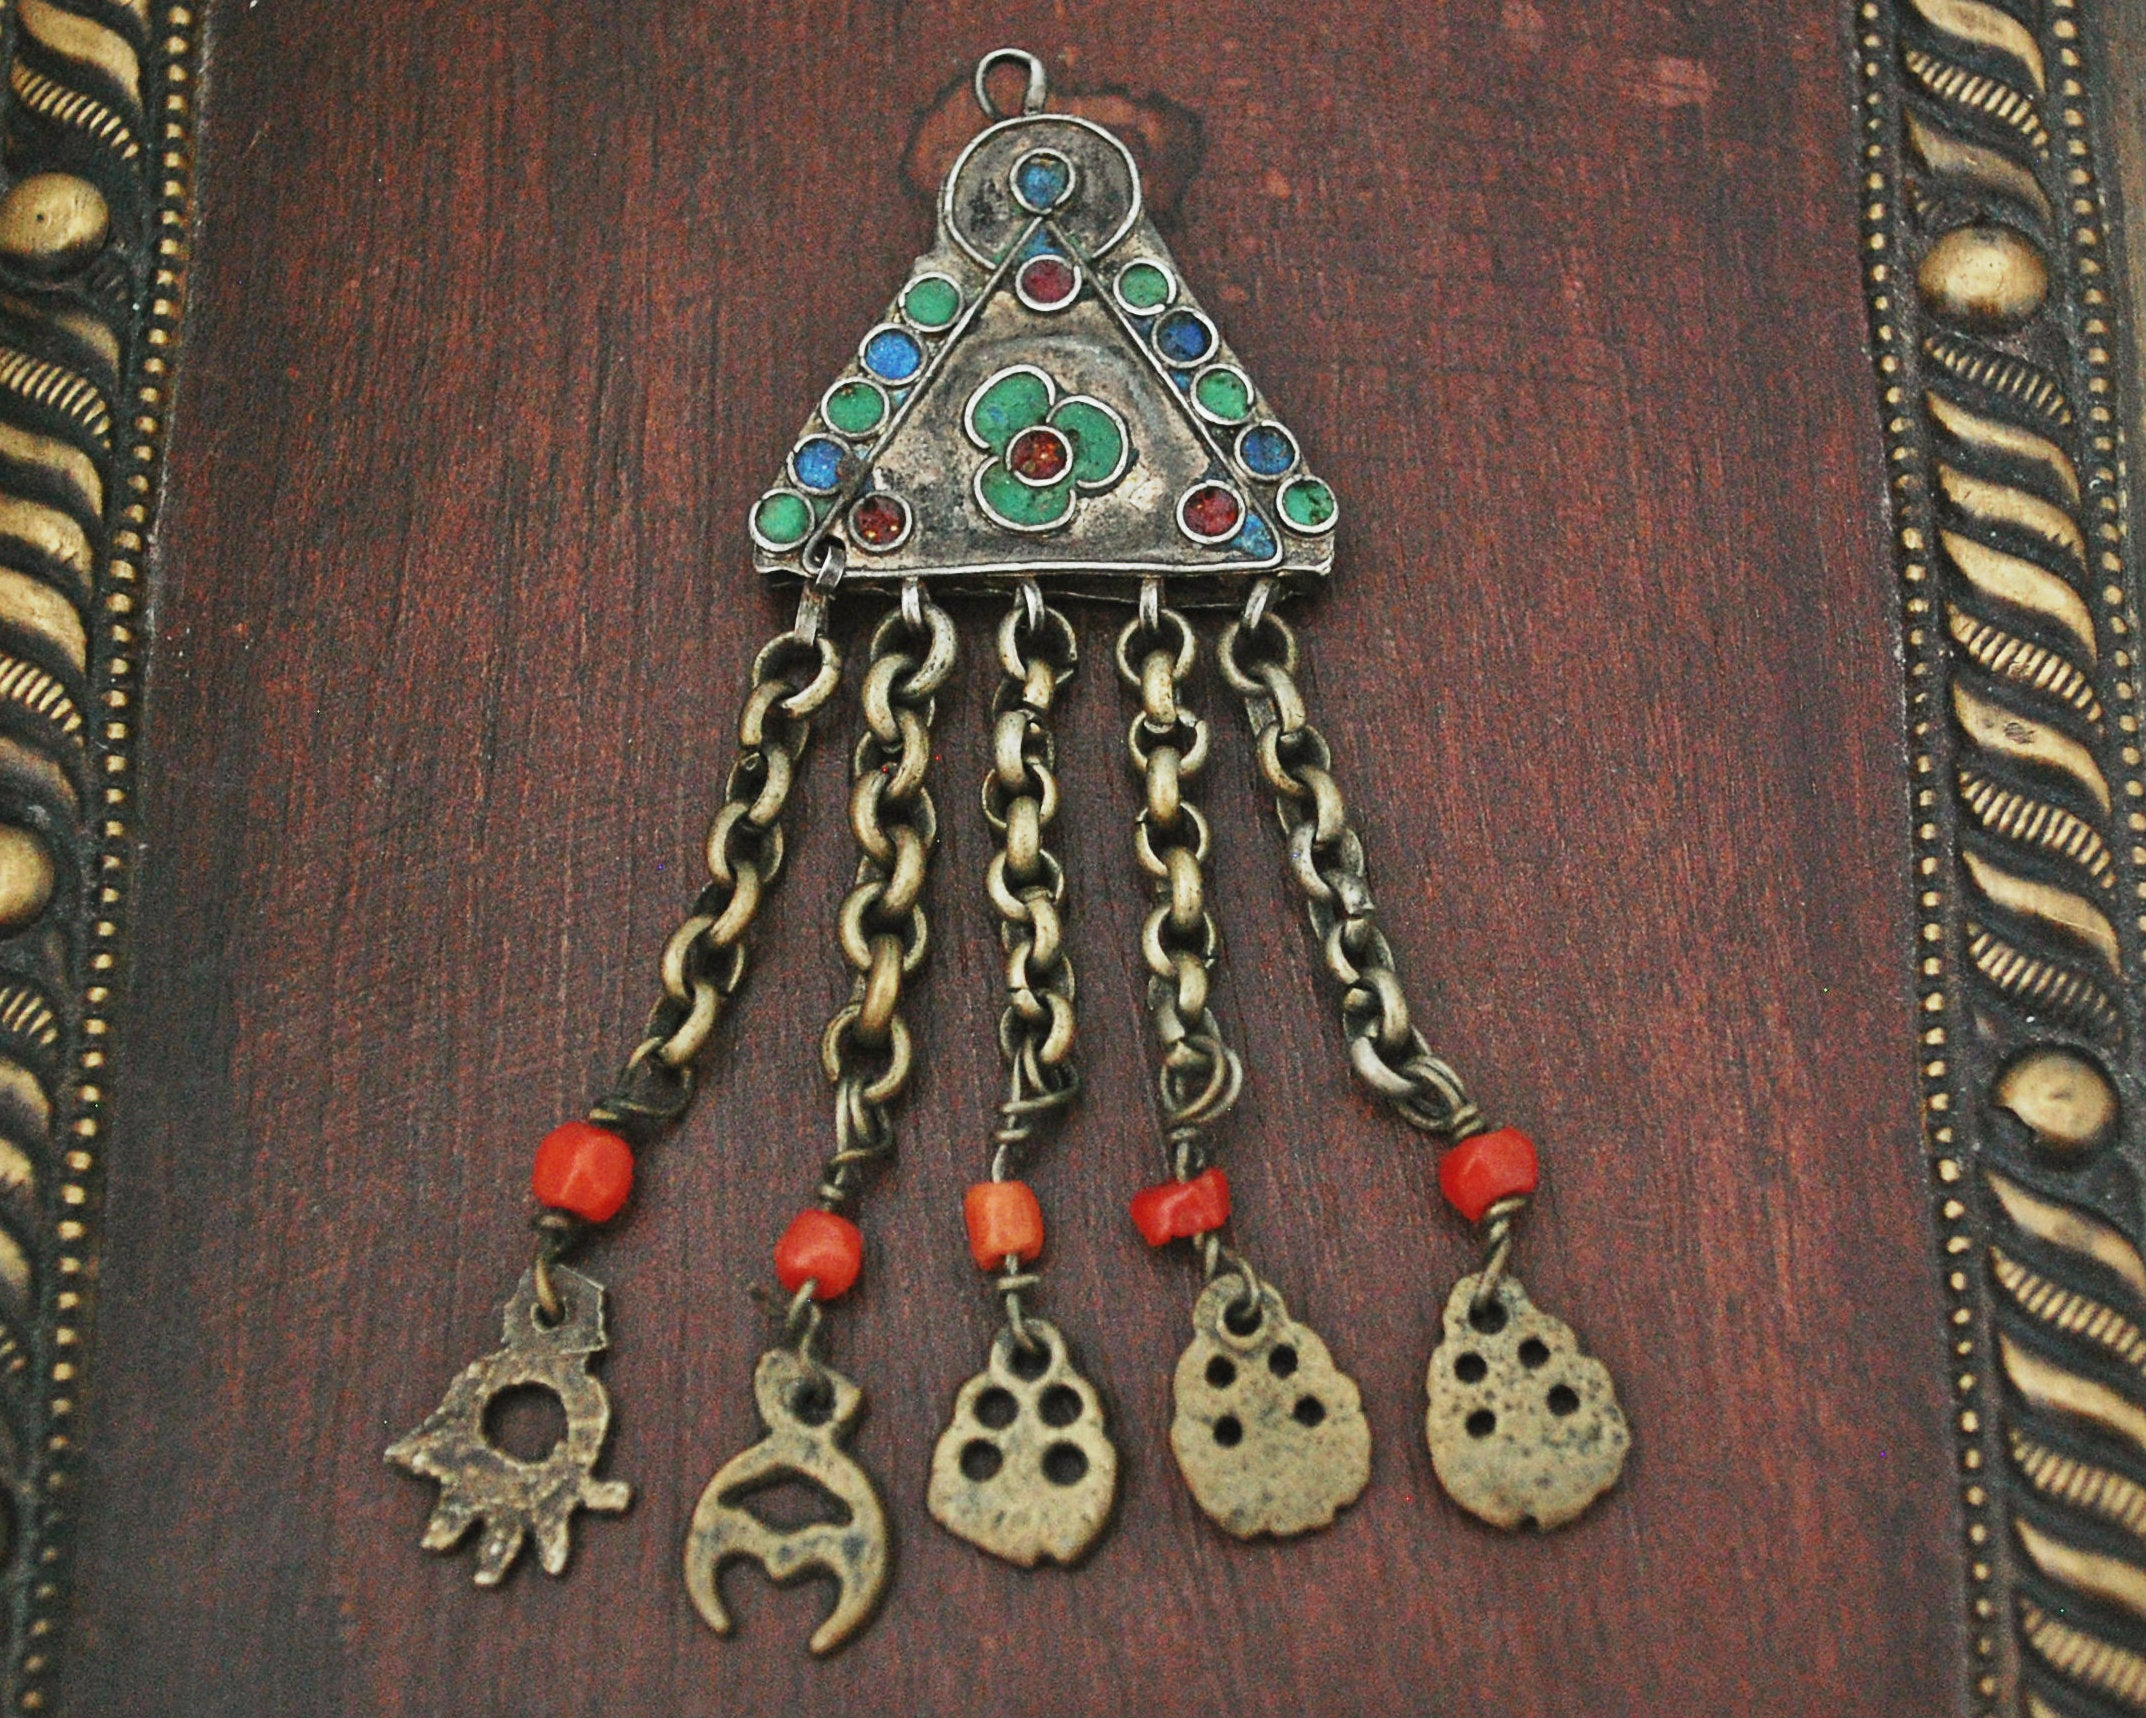 Antique Tunisian Gilded Pendant with Enamel